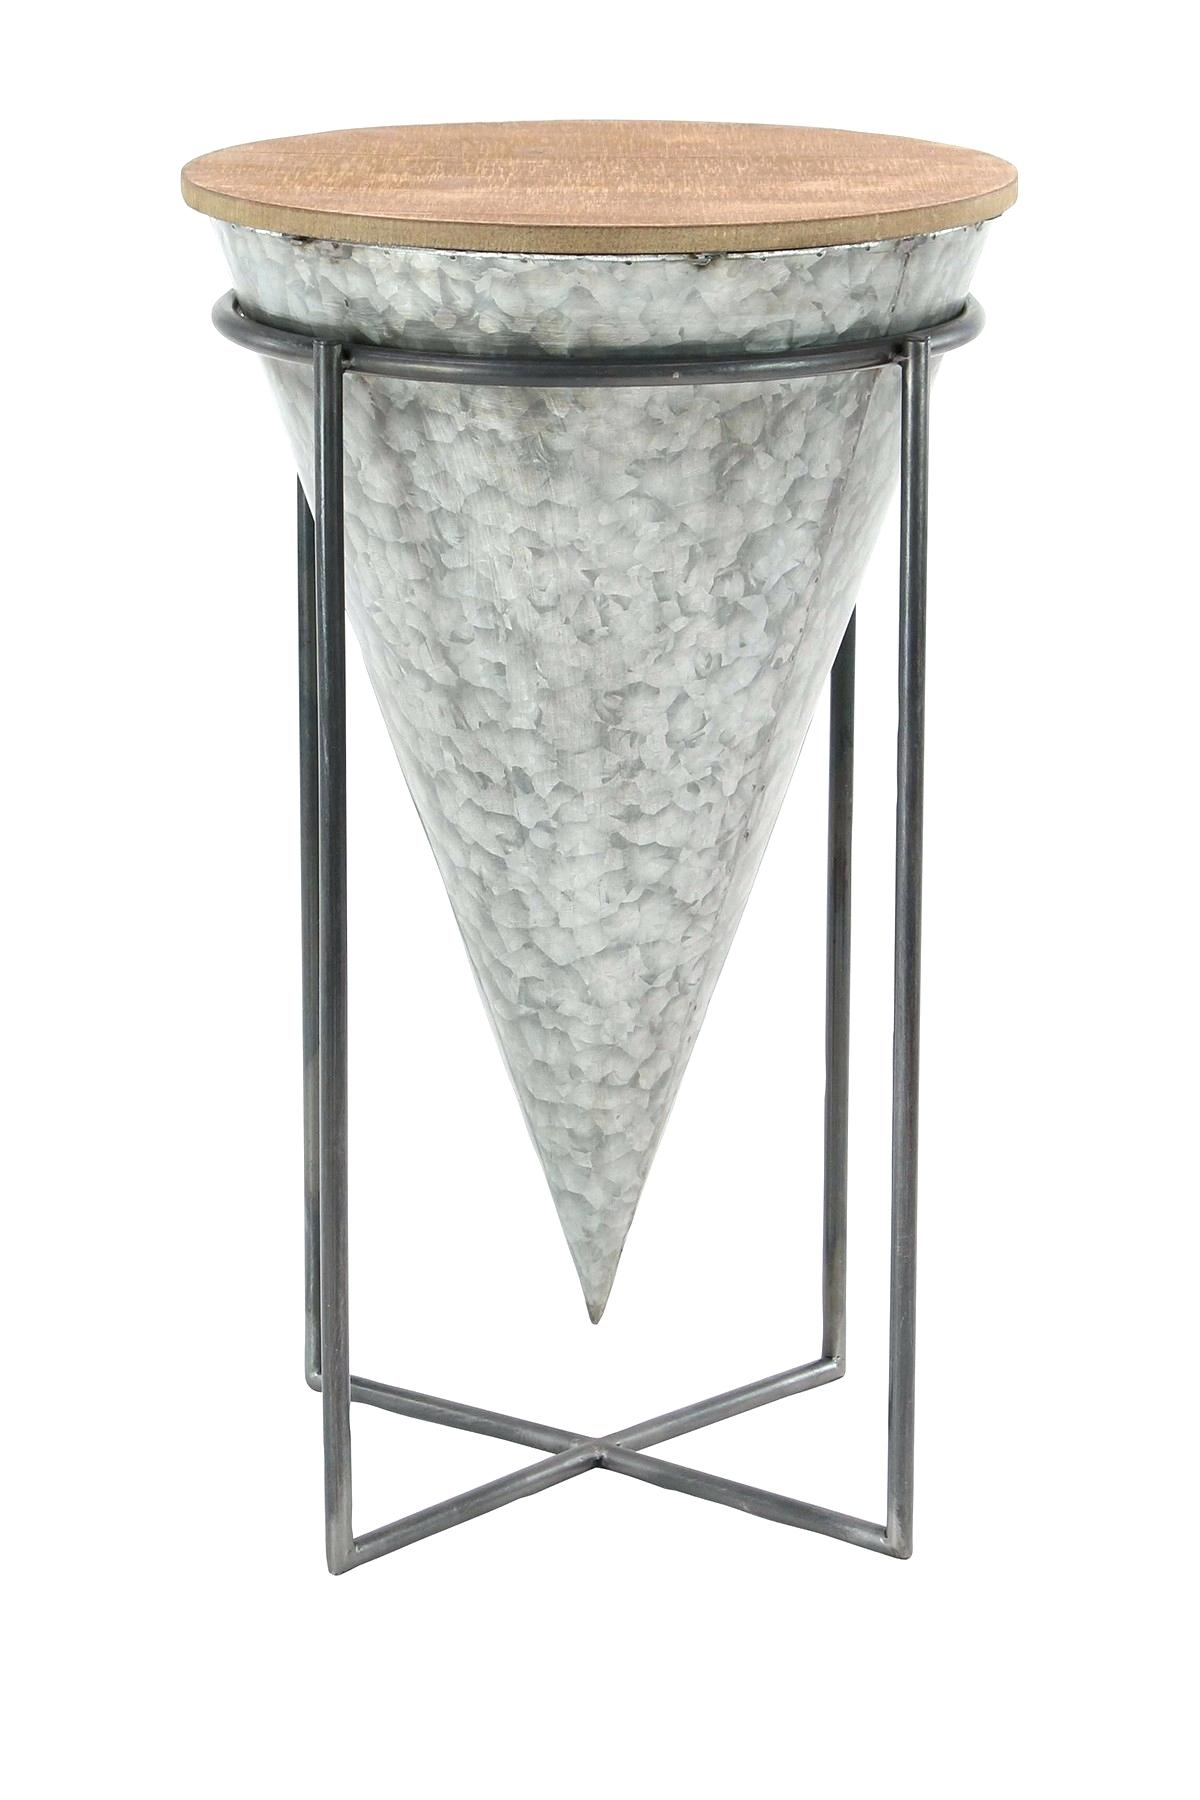 wood accent table metal rustic reclaimed large gray brown square target leather recliner chairs full length mirror light side brass floor lamp green coffee mosaic tablecloth